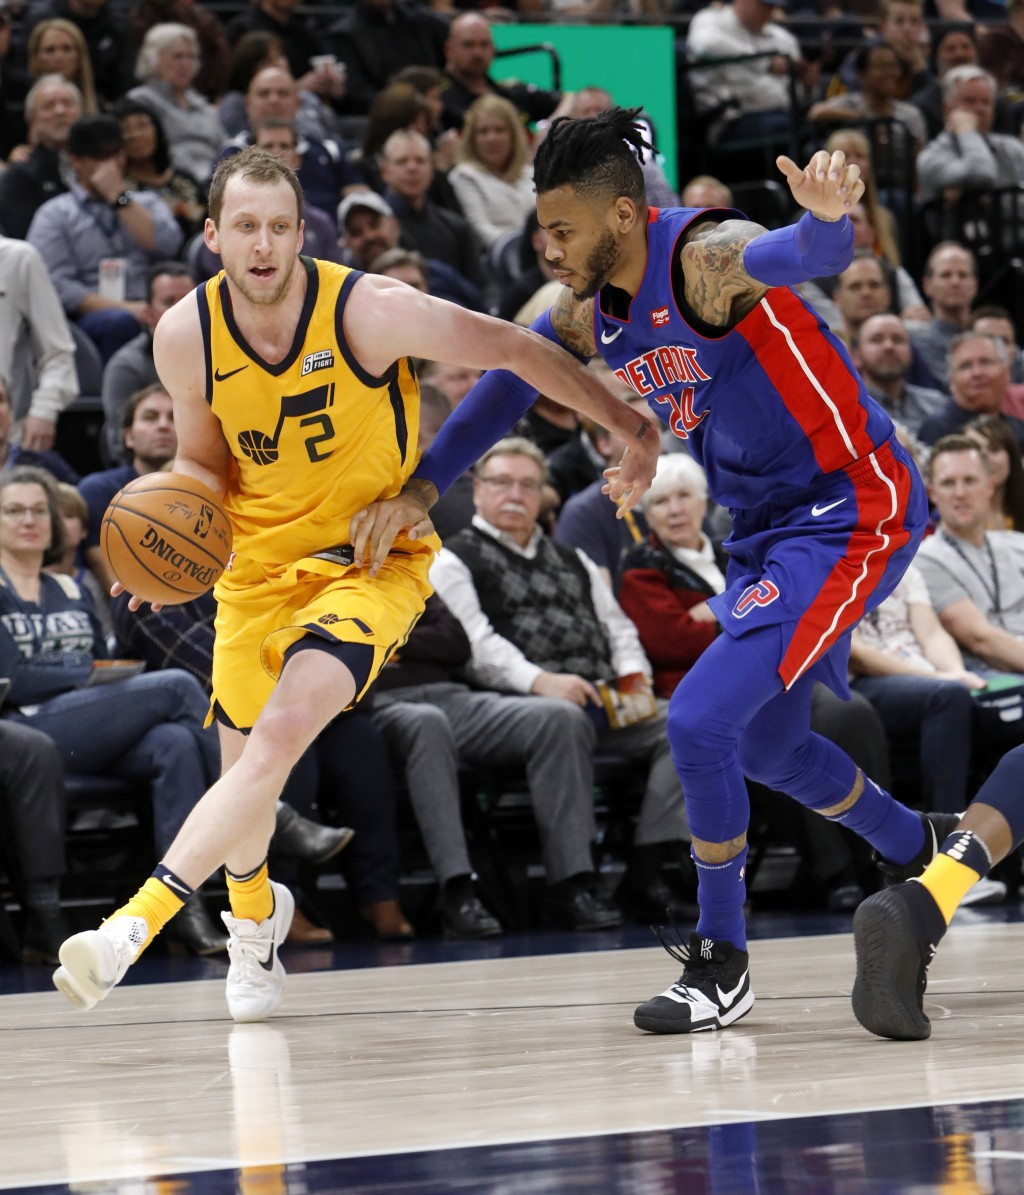 Utah Jazz's Joe Ingles (2) dribbles after stealing the ball from Detroit Pistons' Eric Moreland, right, in the first half of an NBA basketball game on